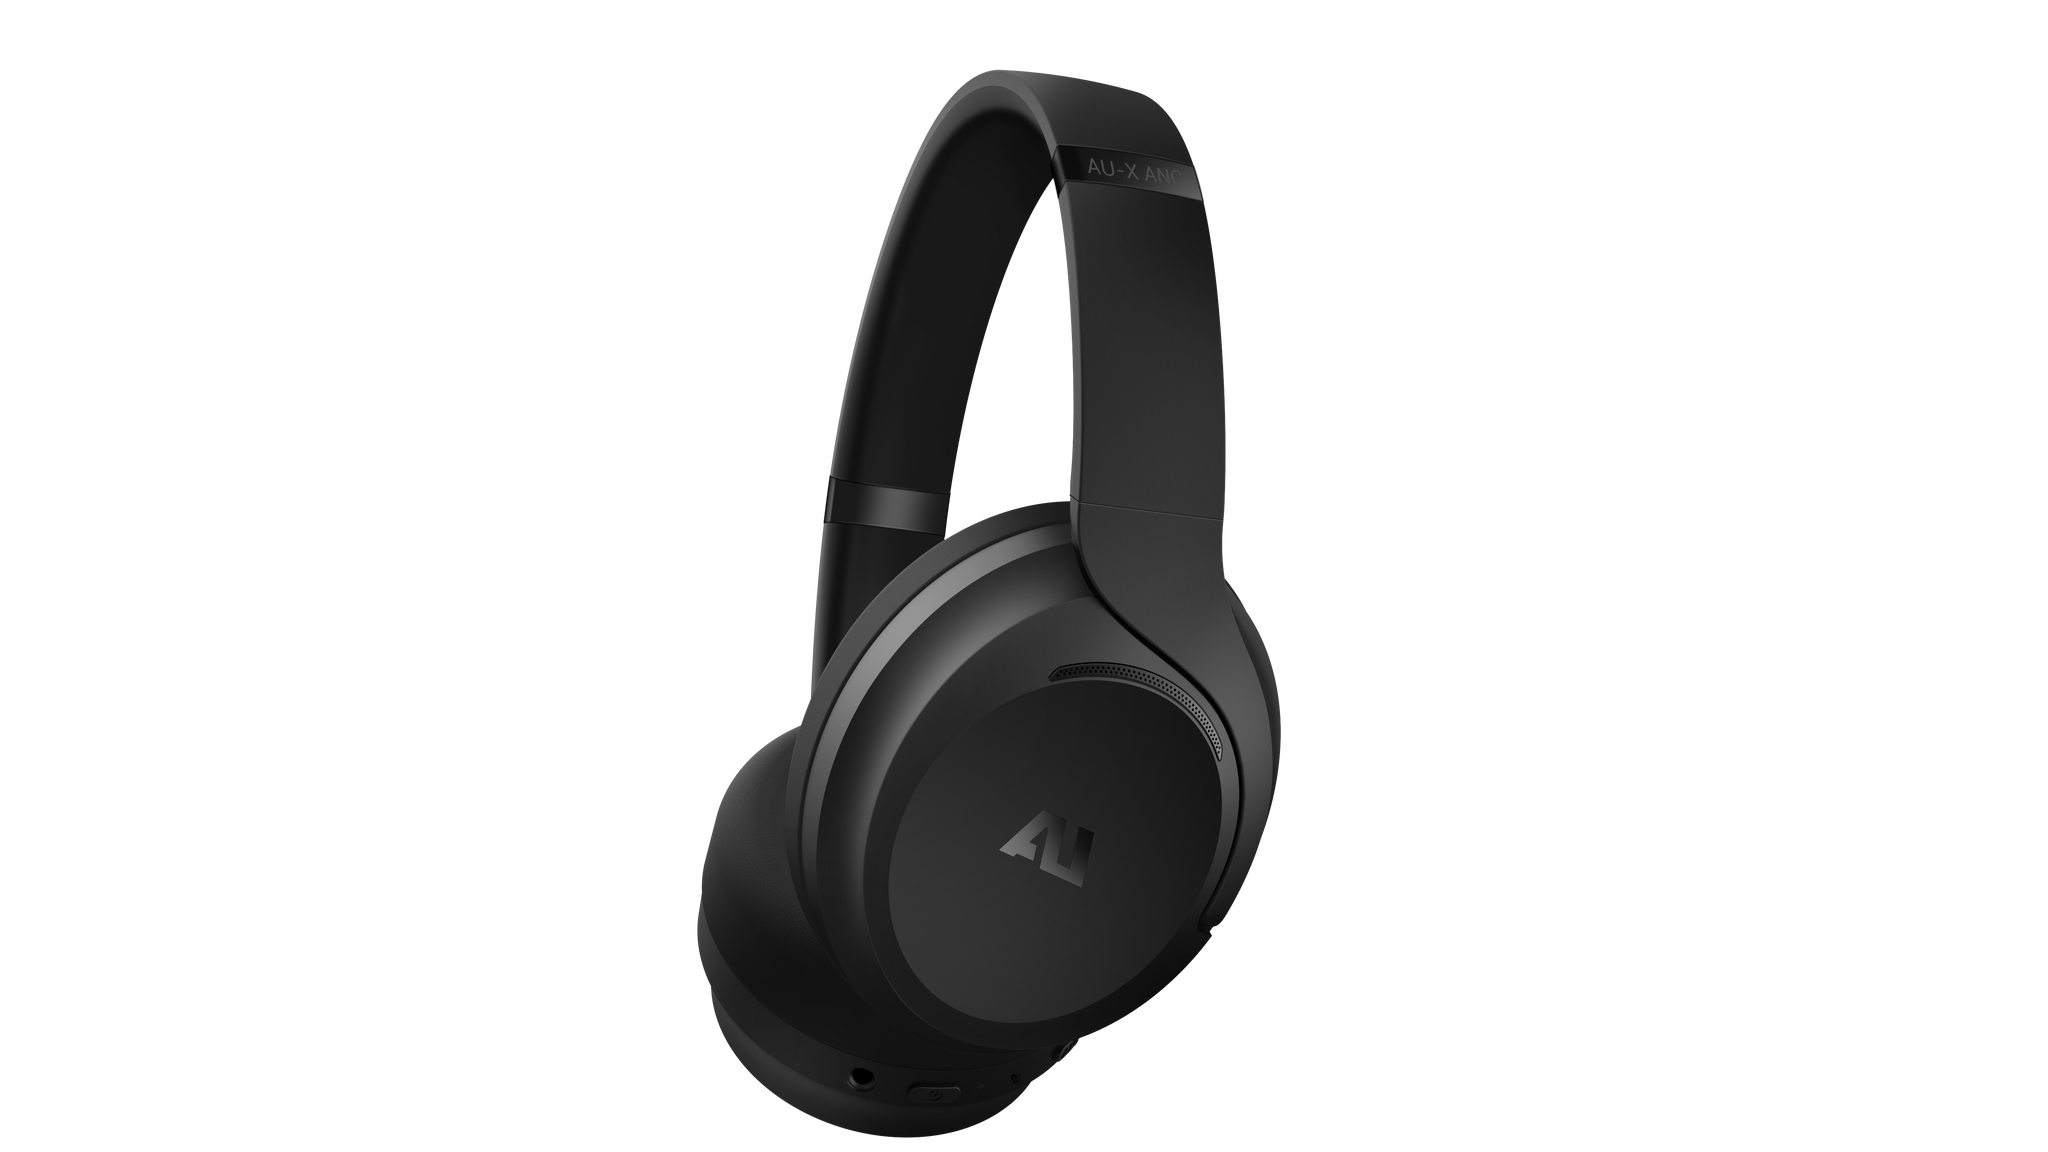 AU-X ANC | Cuffie over-ear wireless con cancellazione del rumore